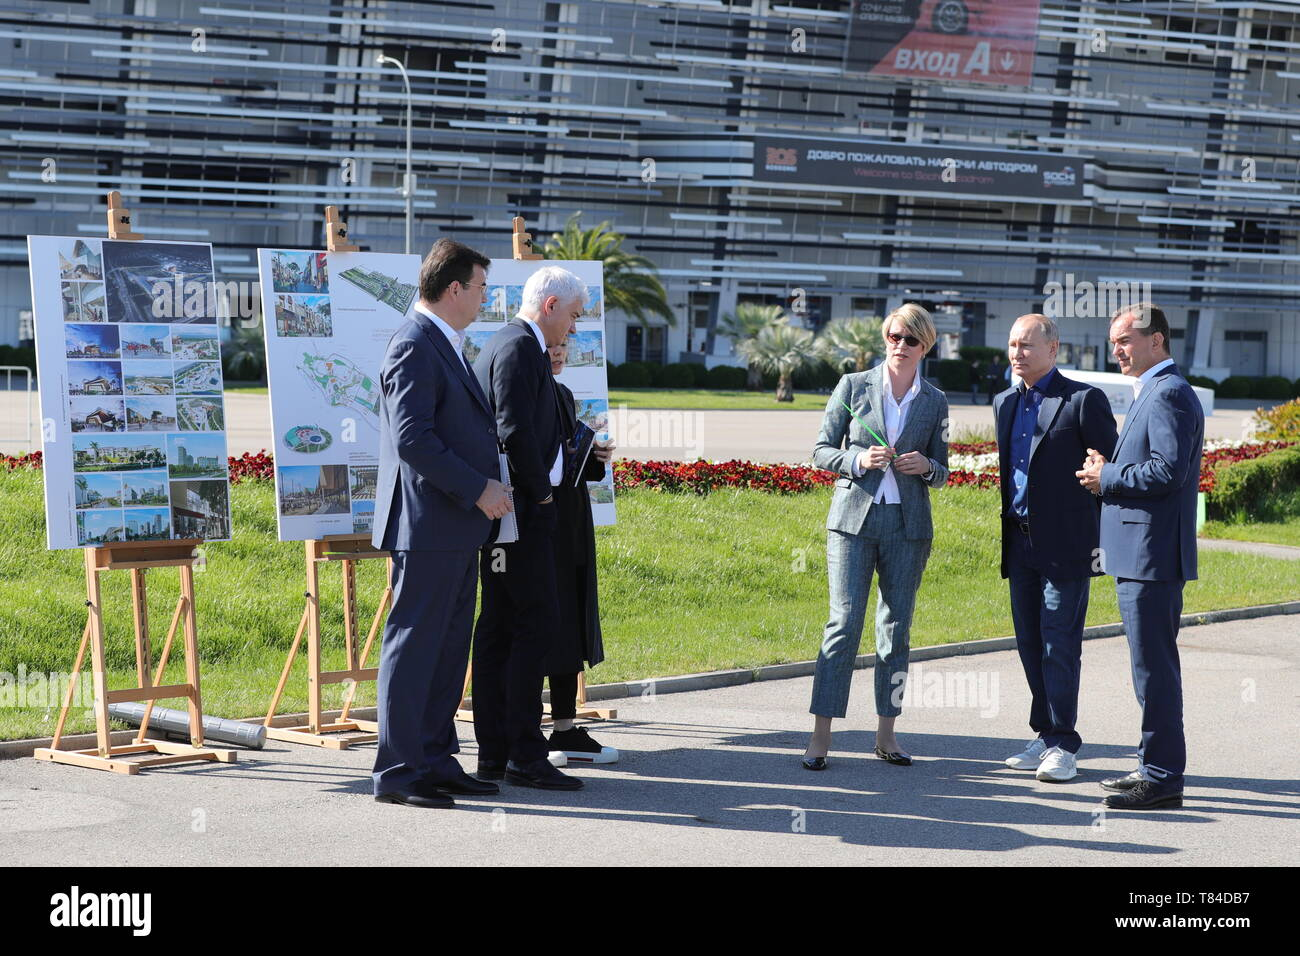 Sochi, Russia. 10th May, 2019. SOCHI, RUSSIA - MAY 10, 2019: Sirius Education Centre director Yelena Shmeleva (3rd R), Russia's President Vladimir Putin (2nd R), and Krasnodar Territory Governor Veniamin Kondratyev (R) visit the Sirius Education Centre. Mikhail Klimentyev/Russian Presidential Press and Information Office/TASS Credit: ITAR-TASS News Agency/Alamy Live News - Stock Image